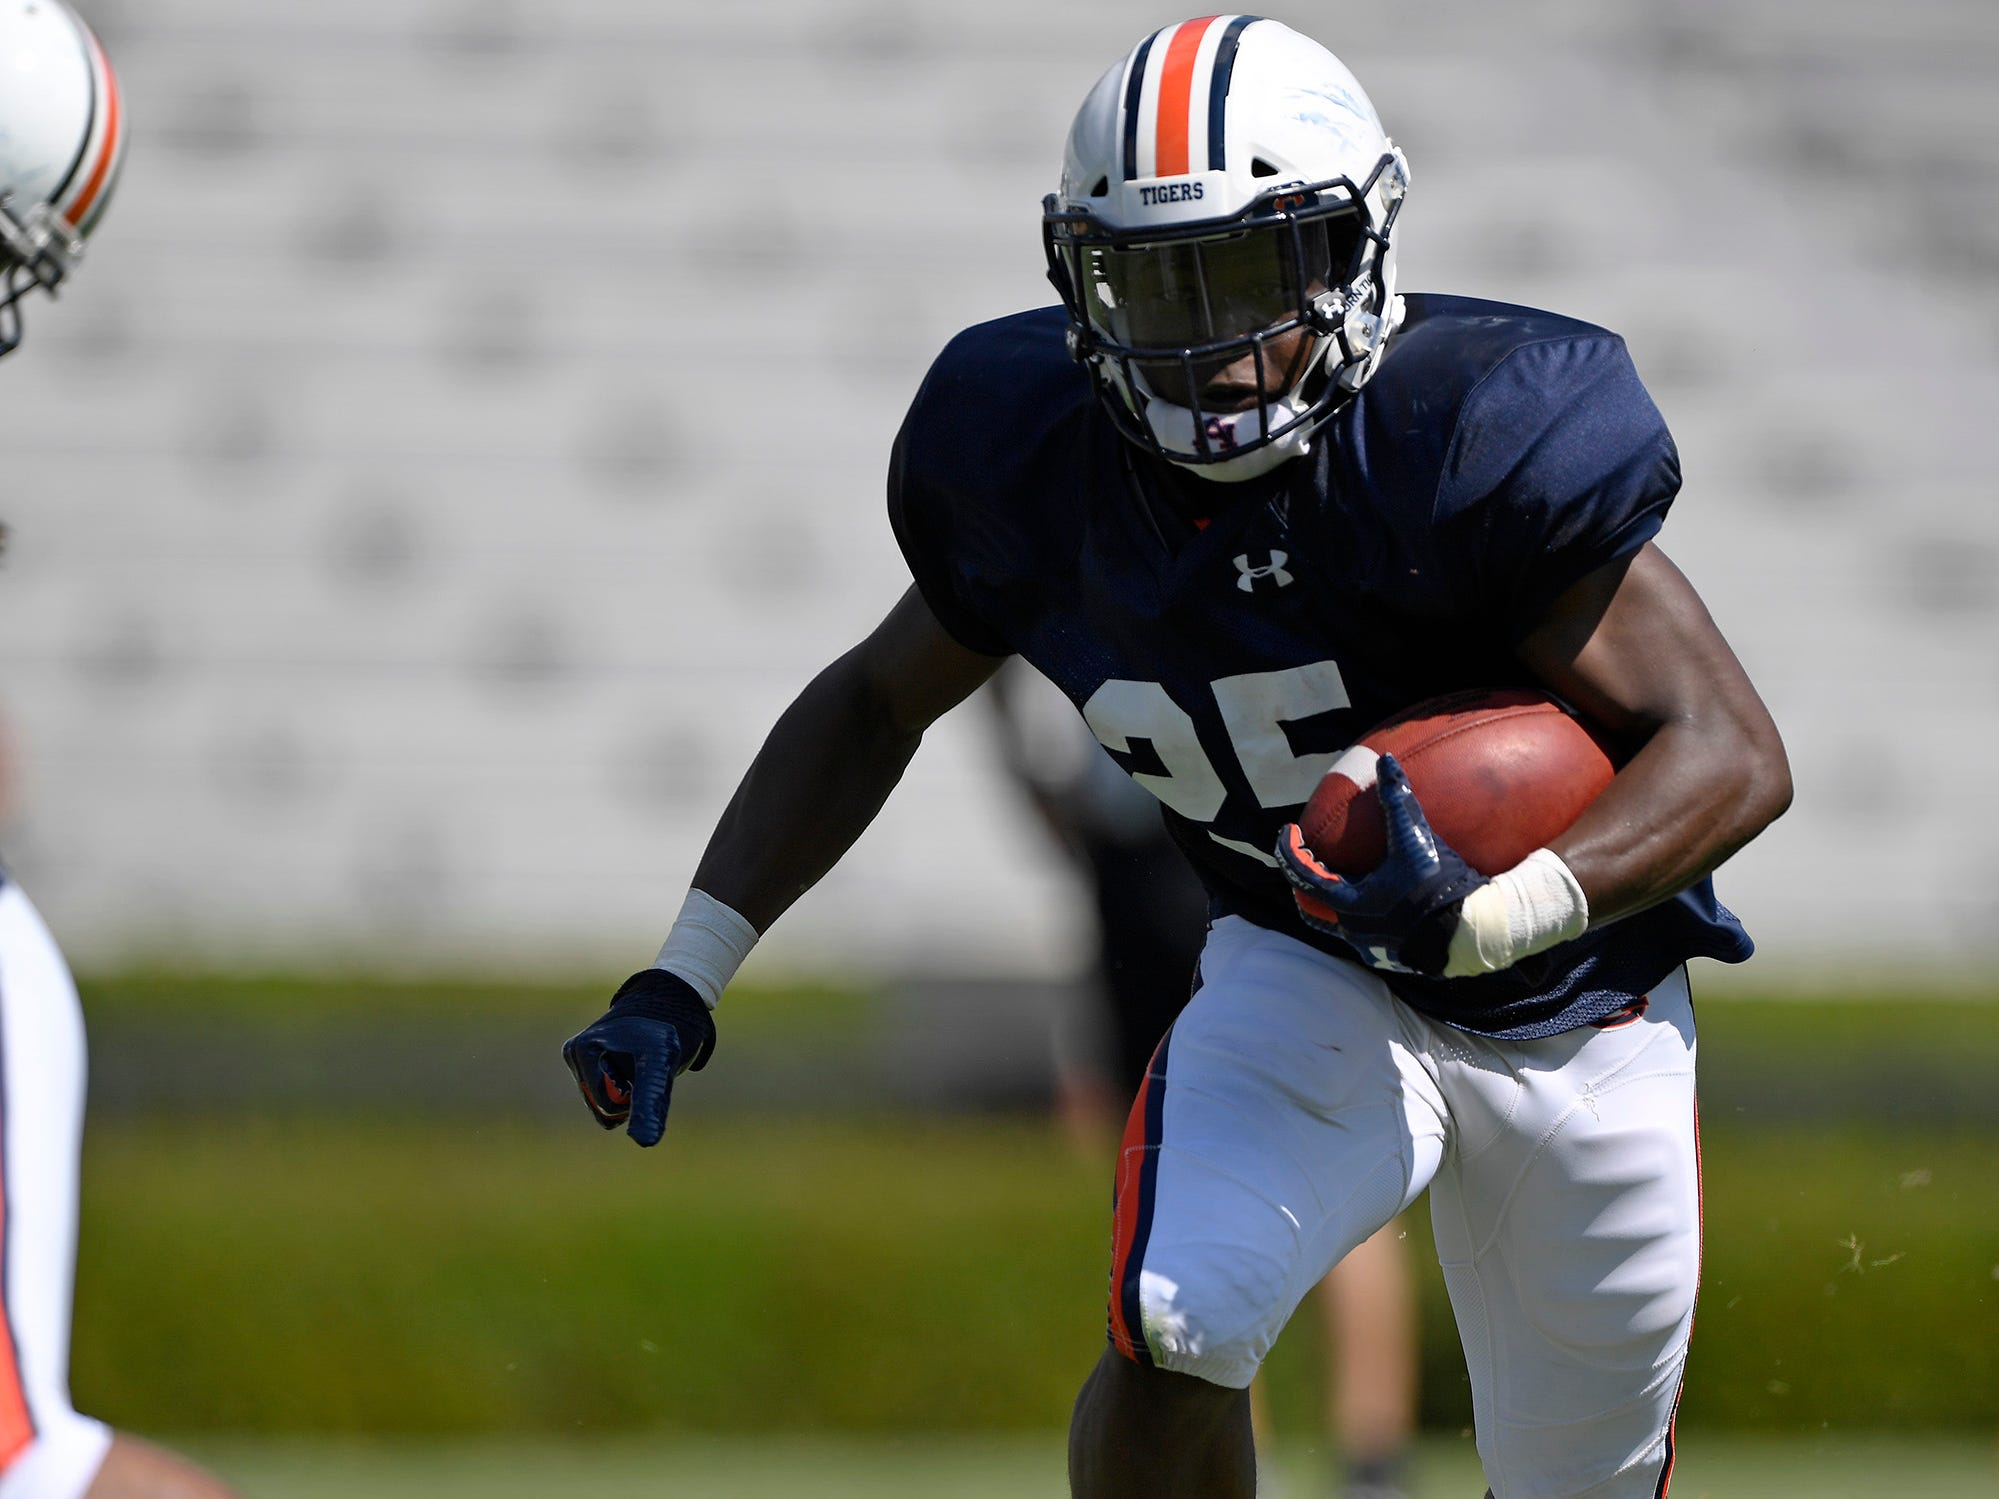 Auburn running back Shaun Shivers runs during a scrimmage on Thursday, Aug. 9, 2018 in Auburn, Ala.